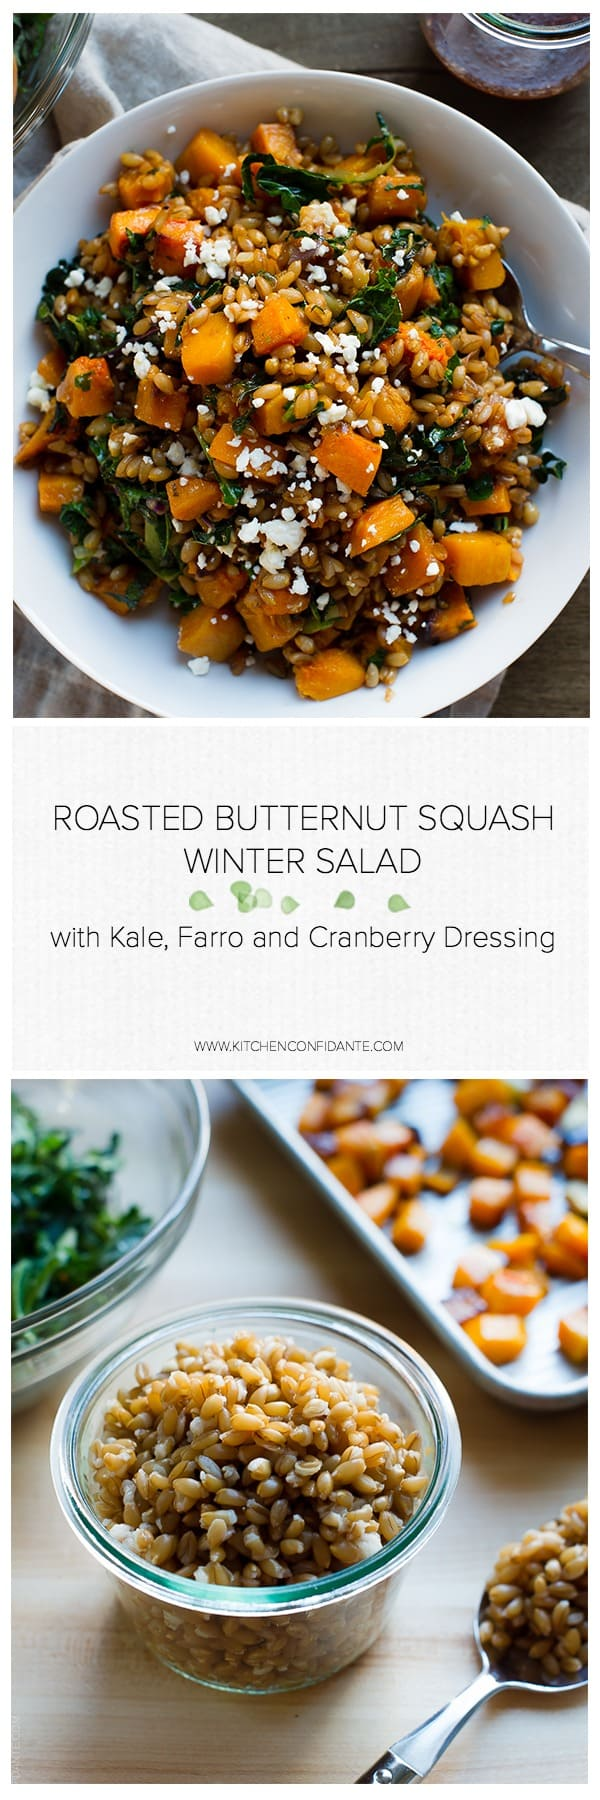 This warm Roasted Butternut Squash Winter Salad with Kale, Farro and Cranberry Dressing is a wholesome and comforting dish - perfect with Thanksgiving turkey, as a side for a delicious winter meal, or as a wholesome lunch on its own.